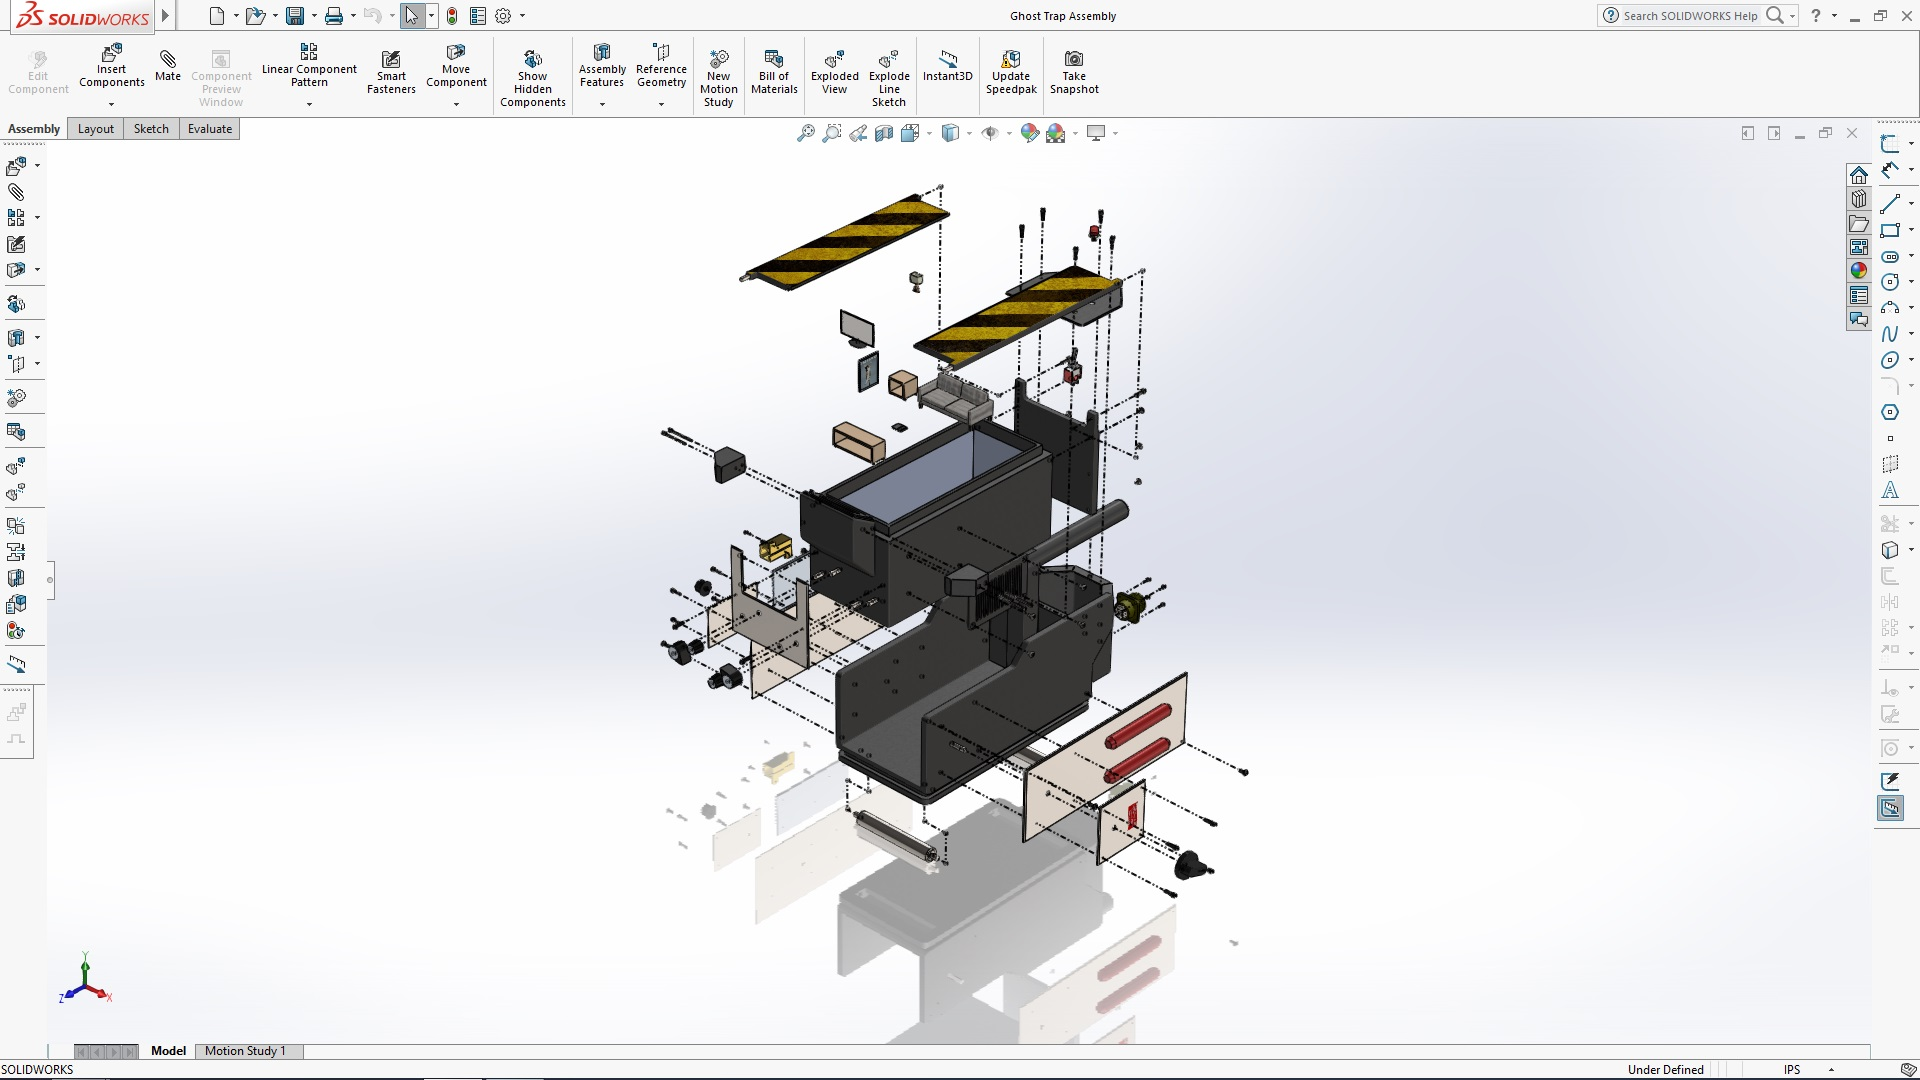 solidworks ghost trap tutorial